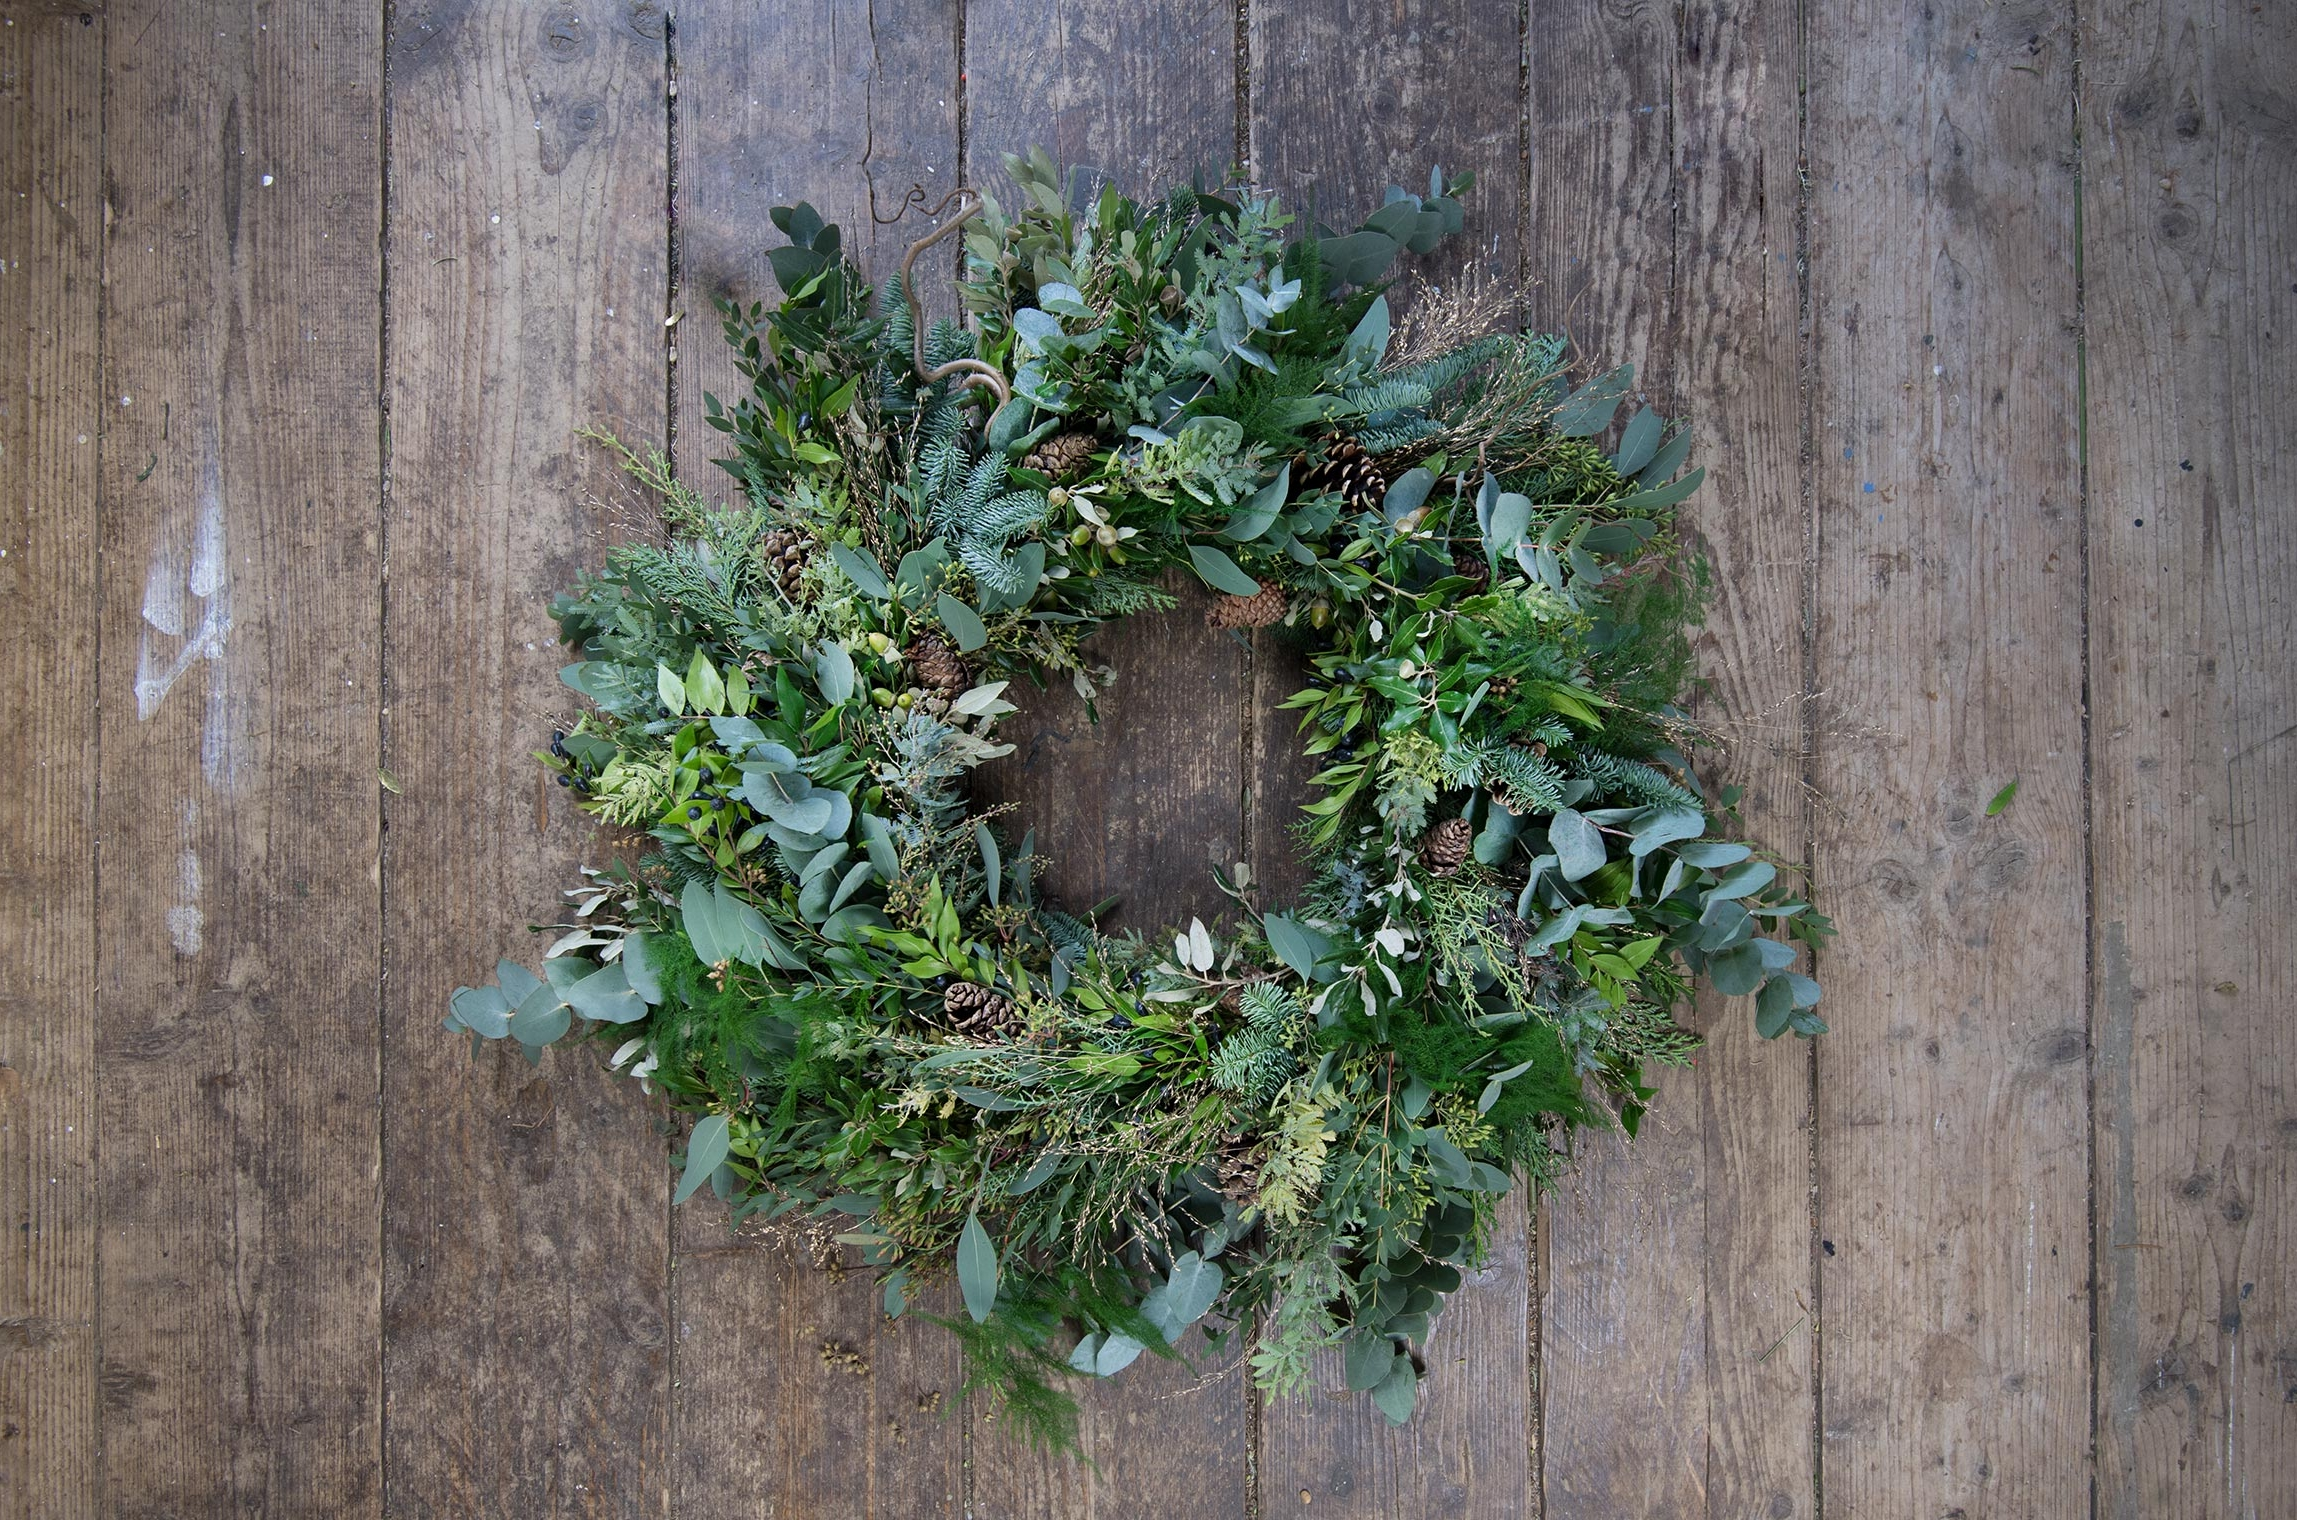 """WINTER WREATH - """"Master the design of winter wreaths - an easy step by step guide"""""""